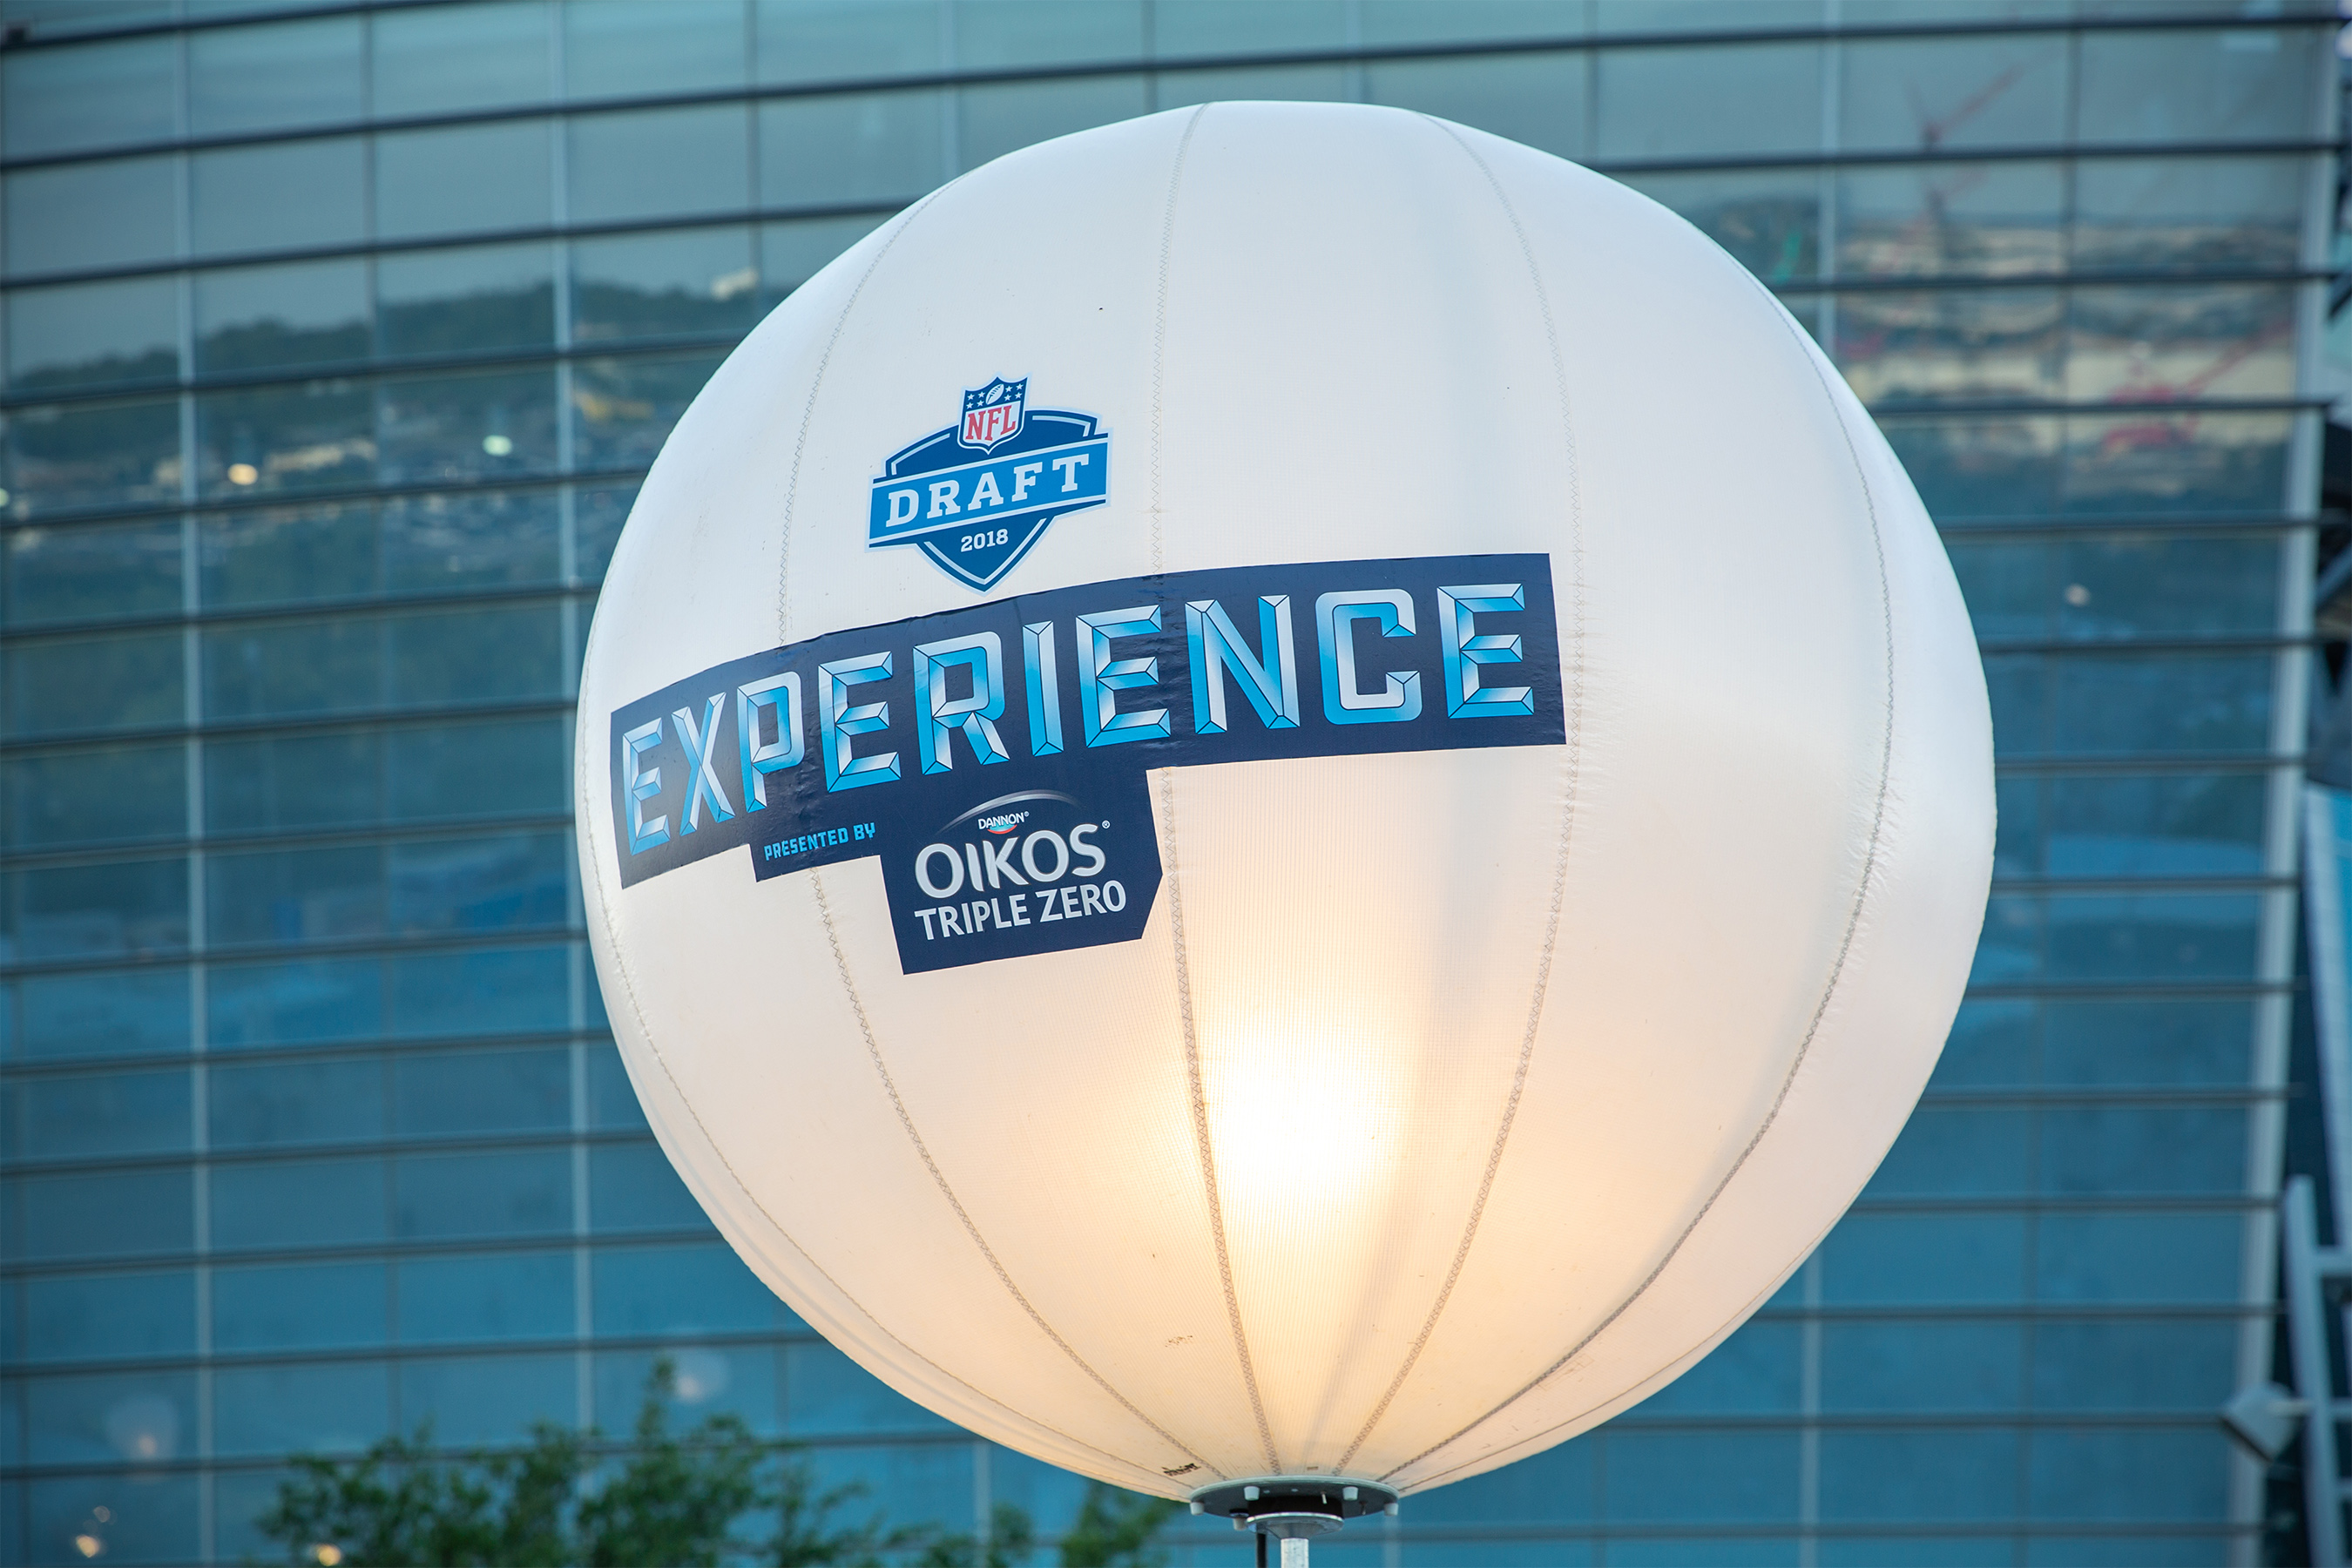 NFL Draft Outdoor Event Lighting